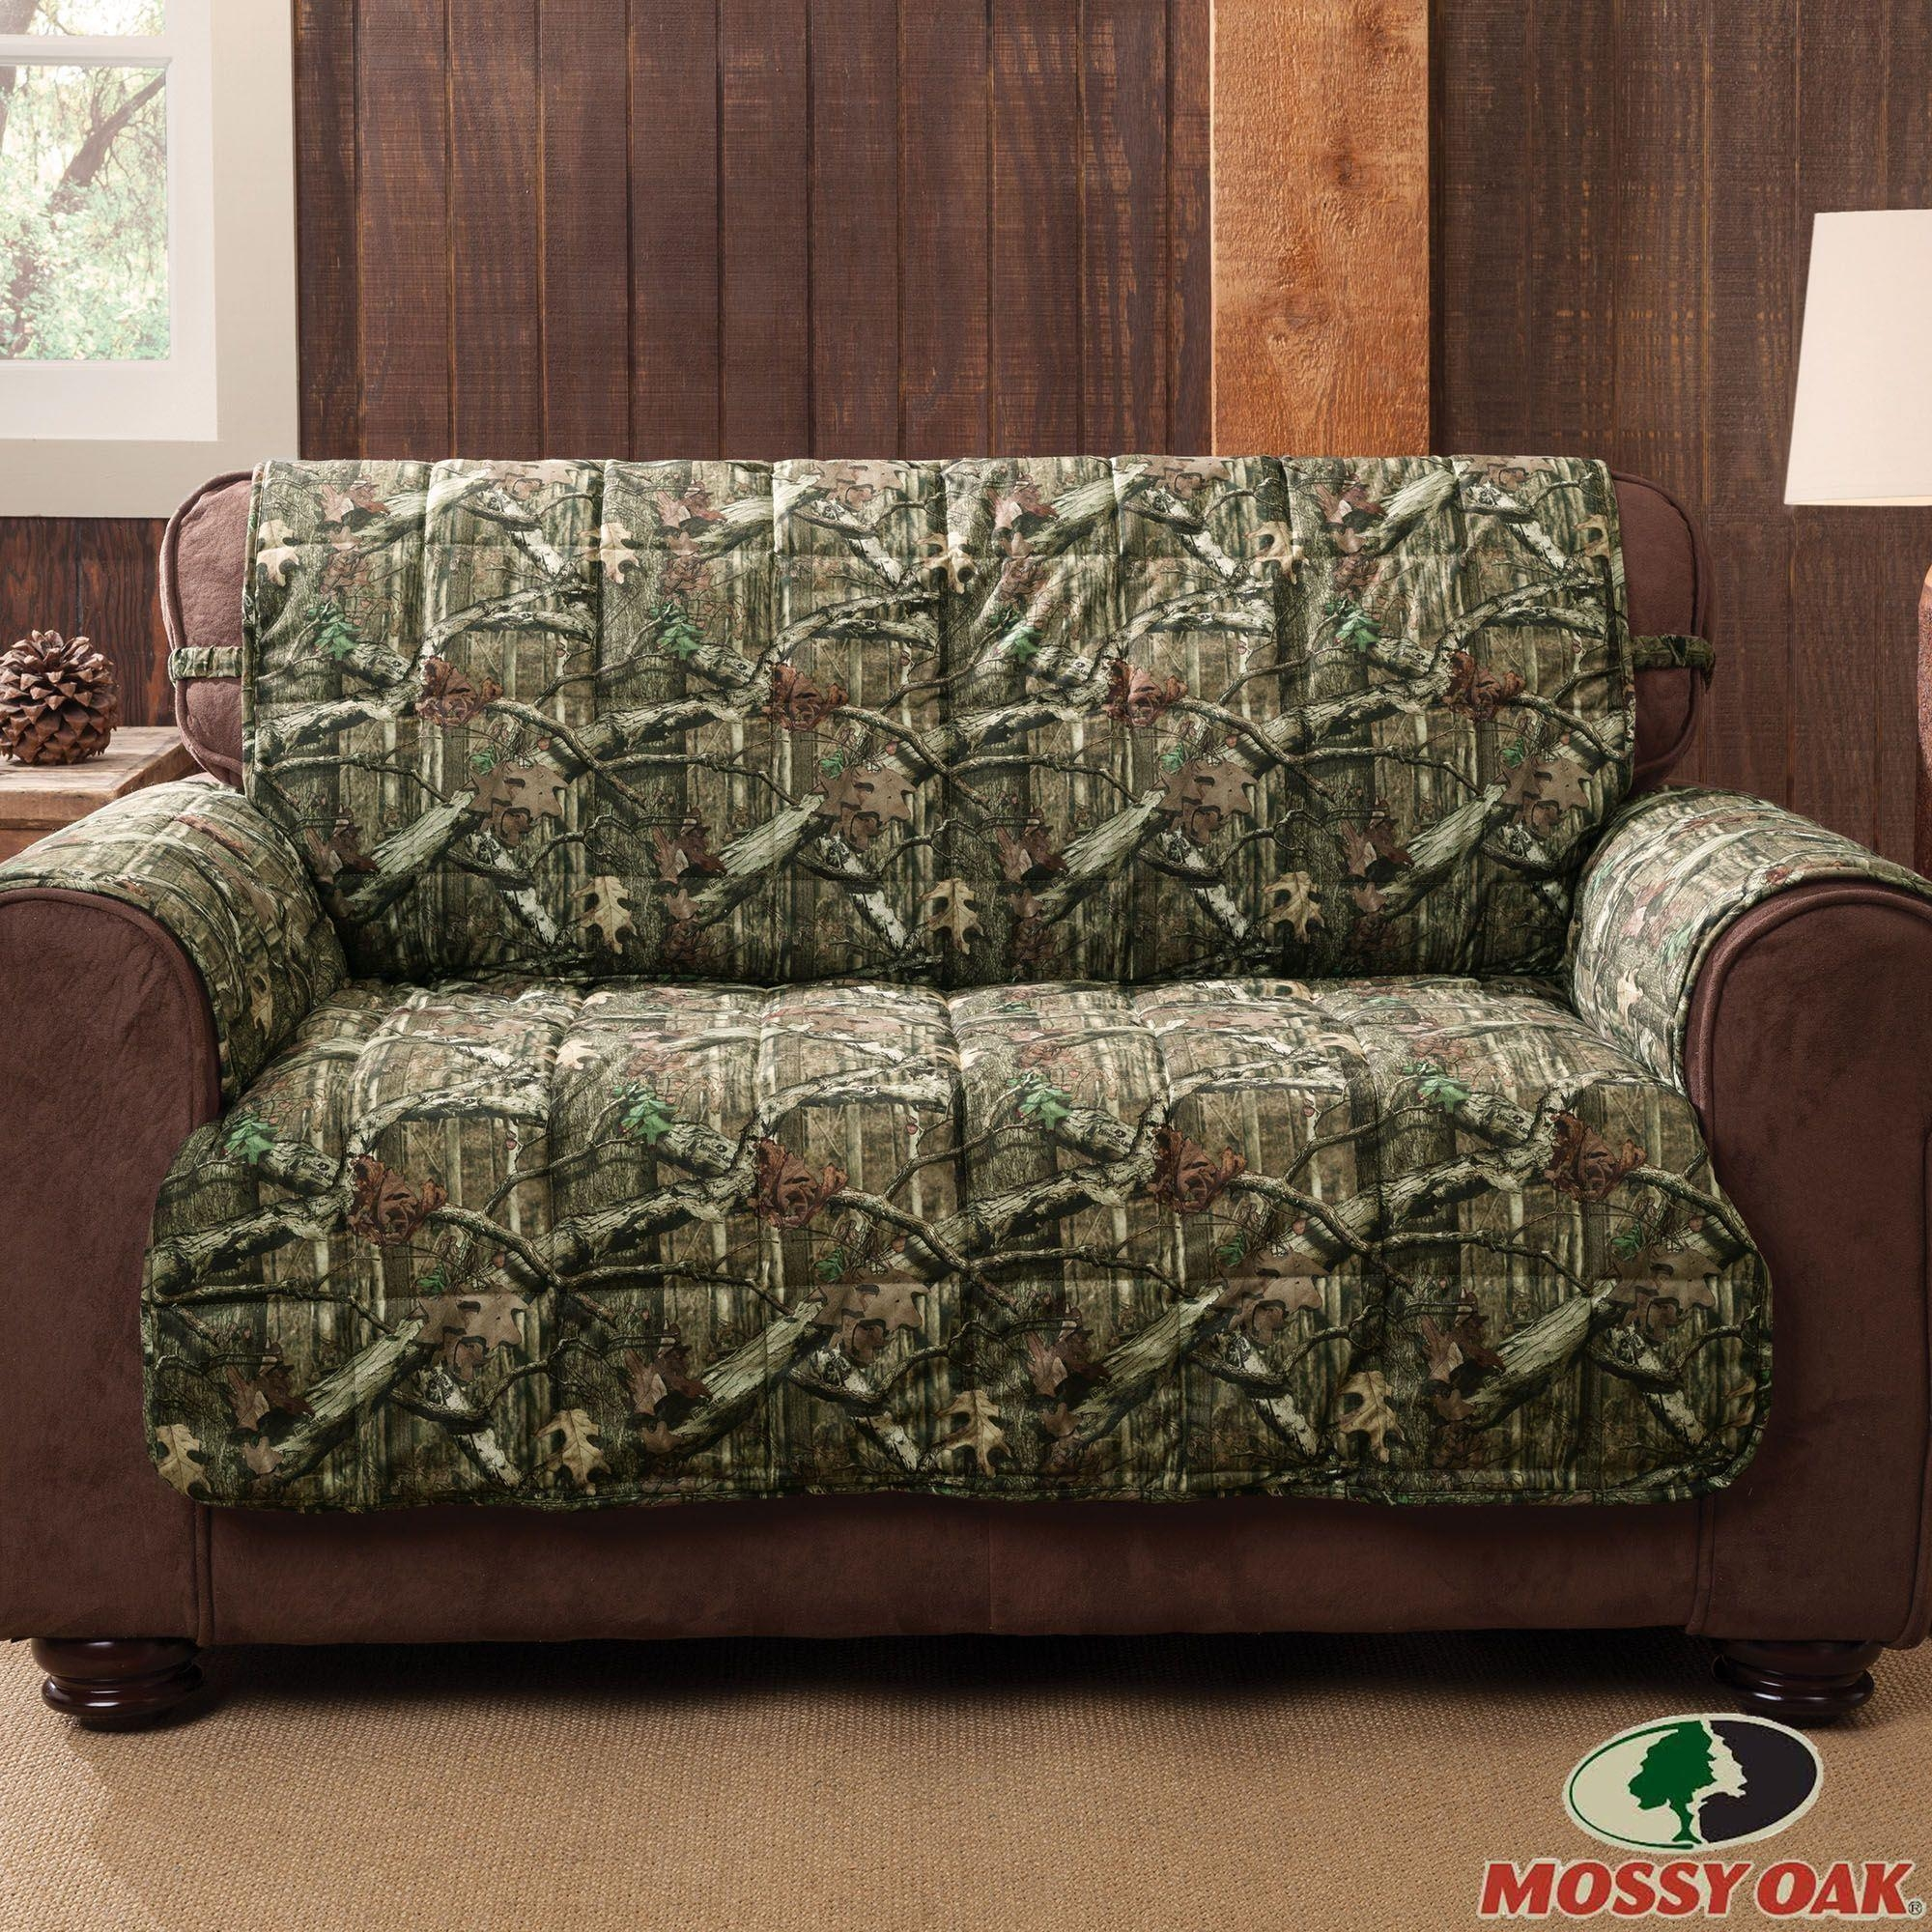 Mossy Oak Break Up Infinity Camo Furniture Protectors Throughout Camo Reclining Sofas (Image 18 of 20)